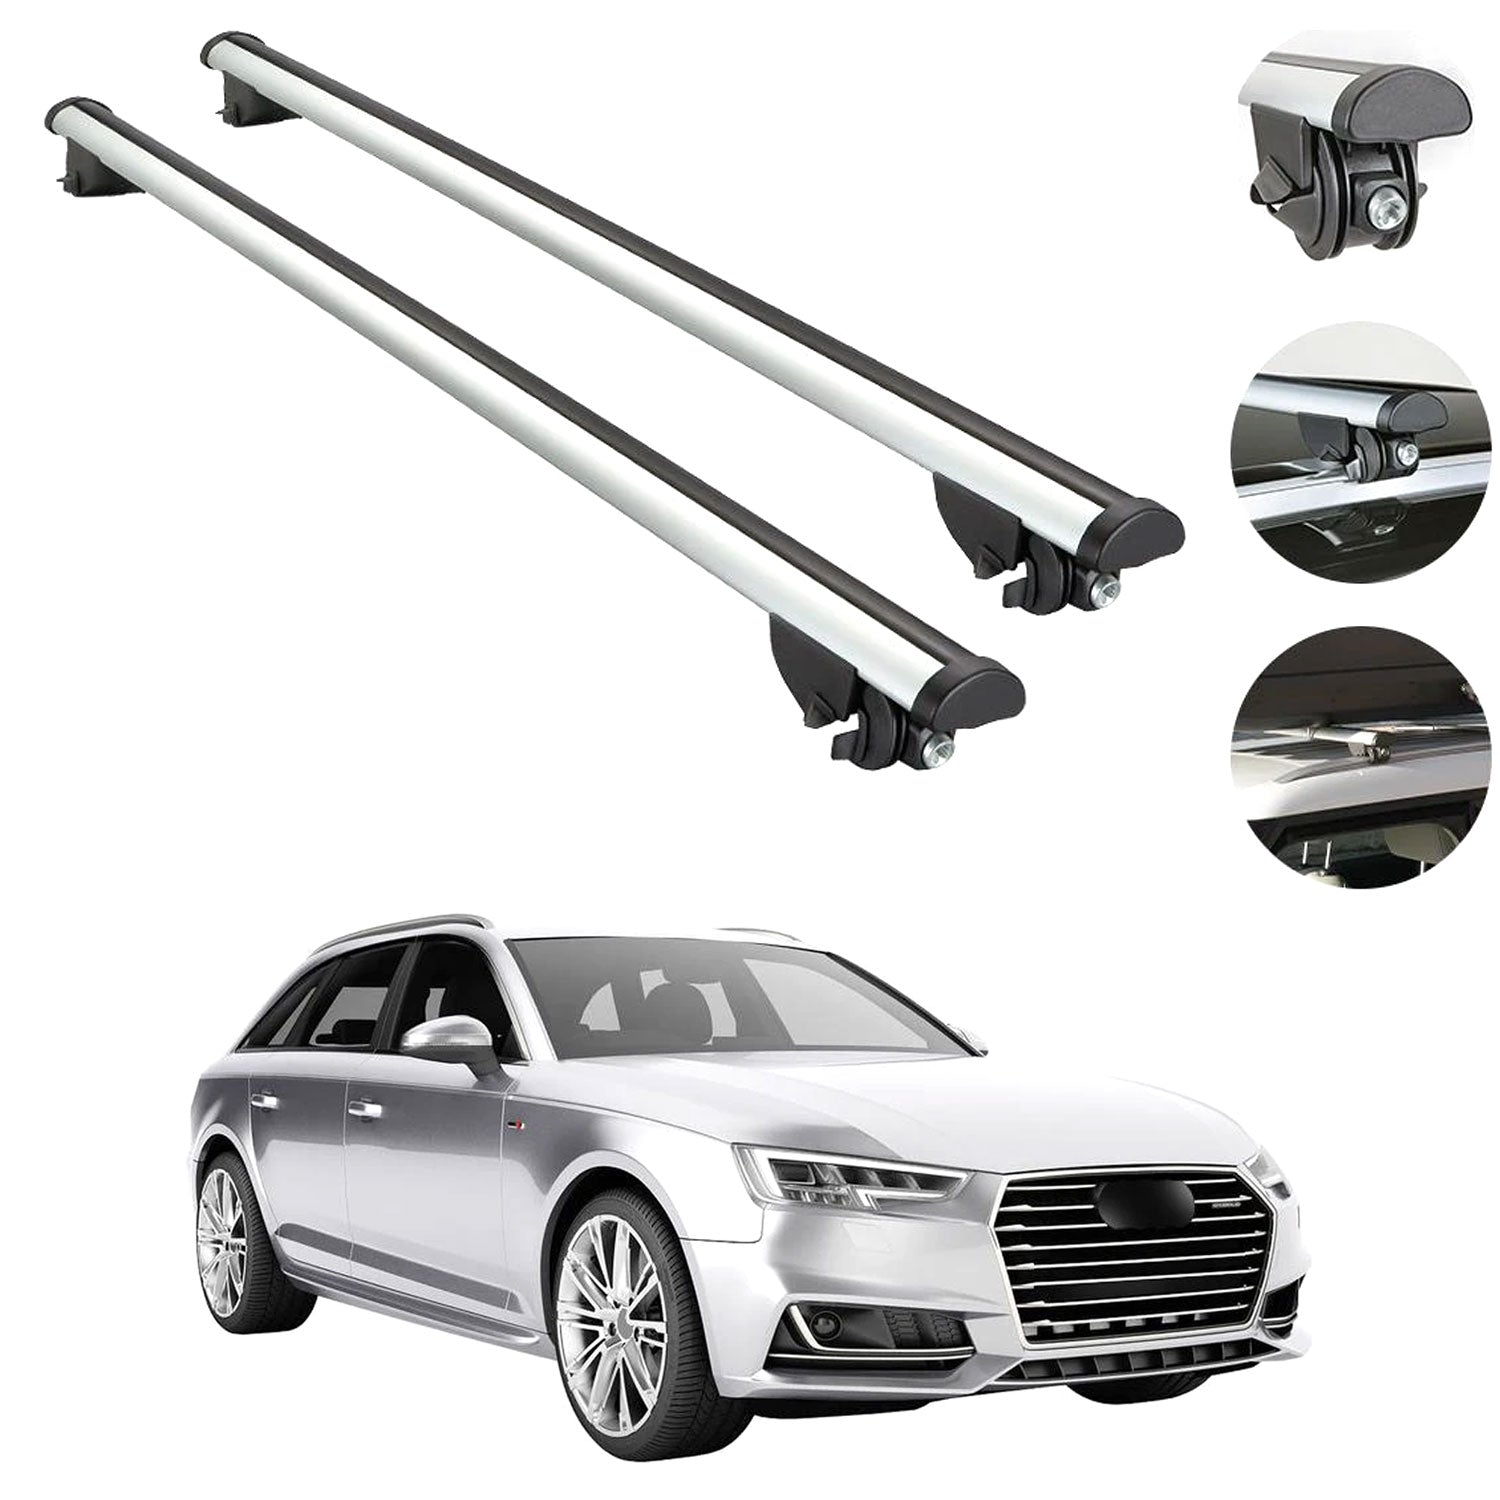 Cross Bars Roof Rack Luggage Carrier Silver Aluminum For Audi A4 Wagon 2009-2016